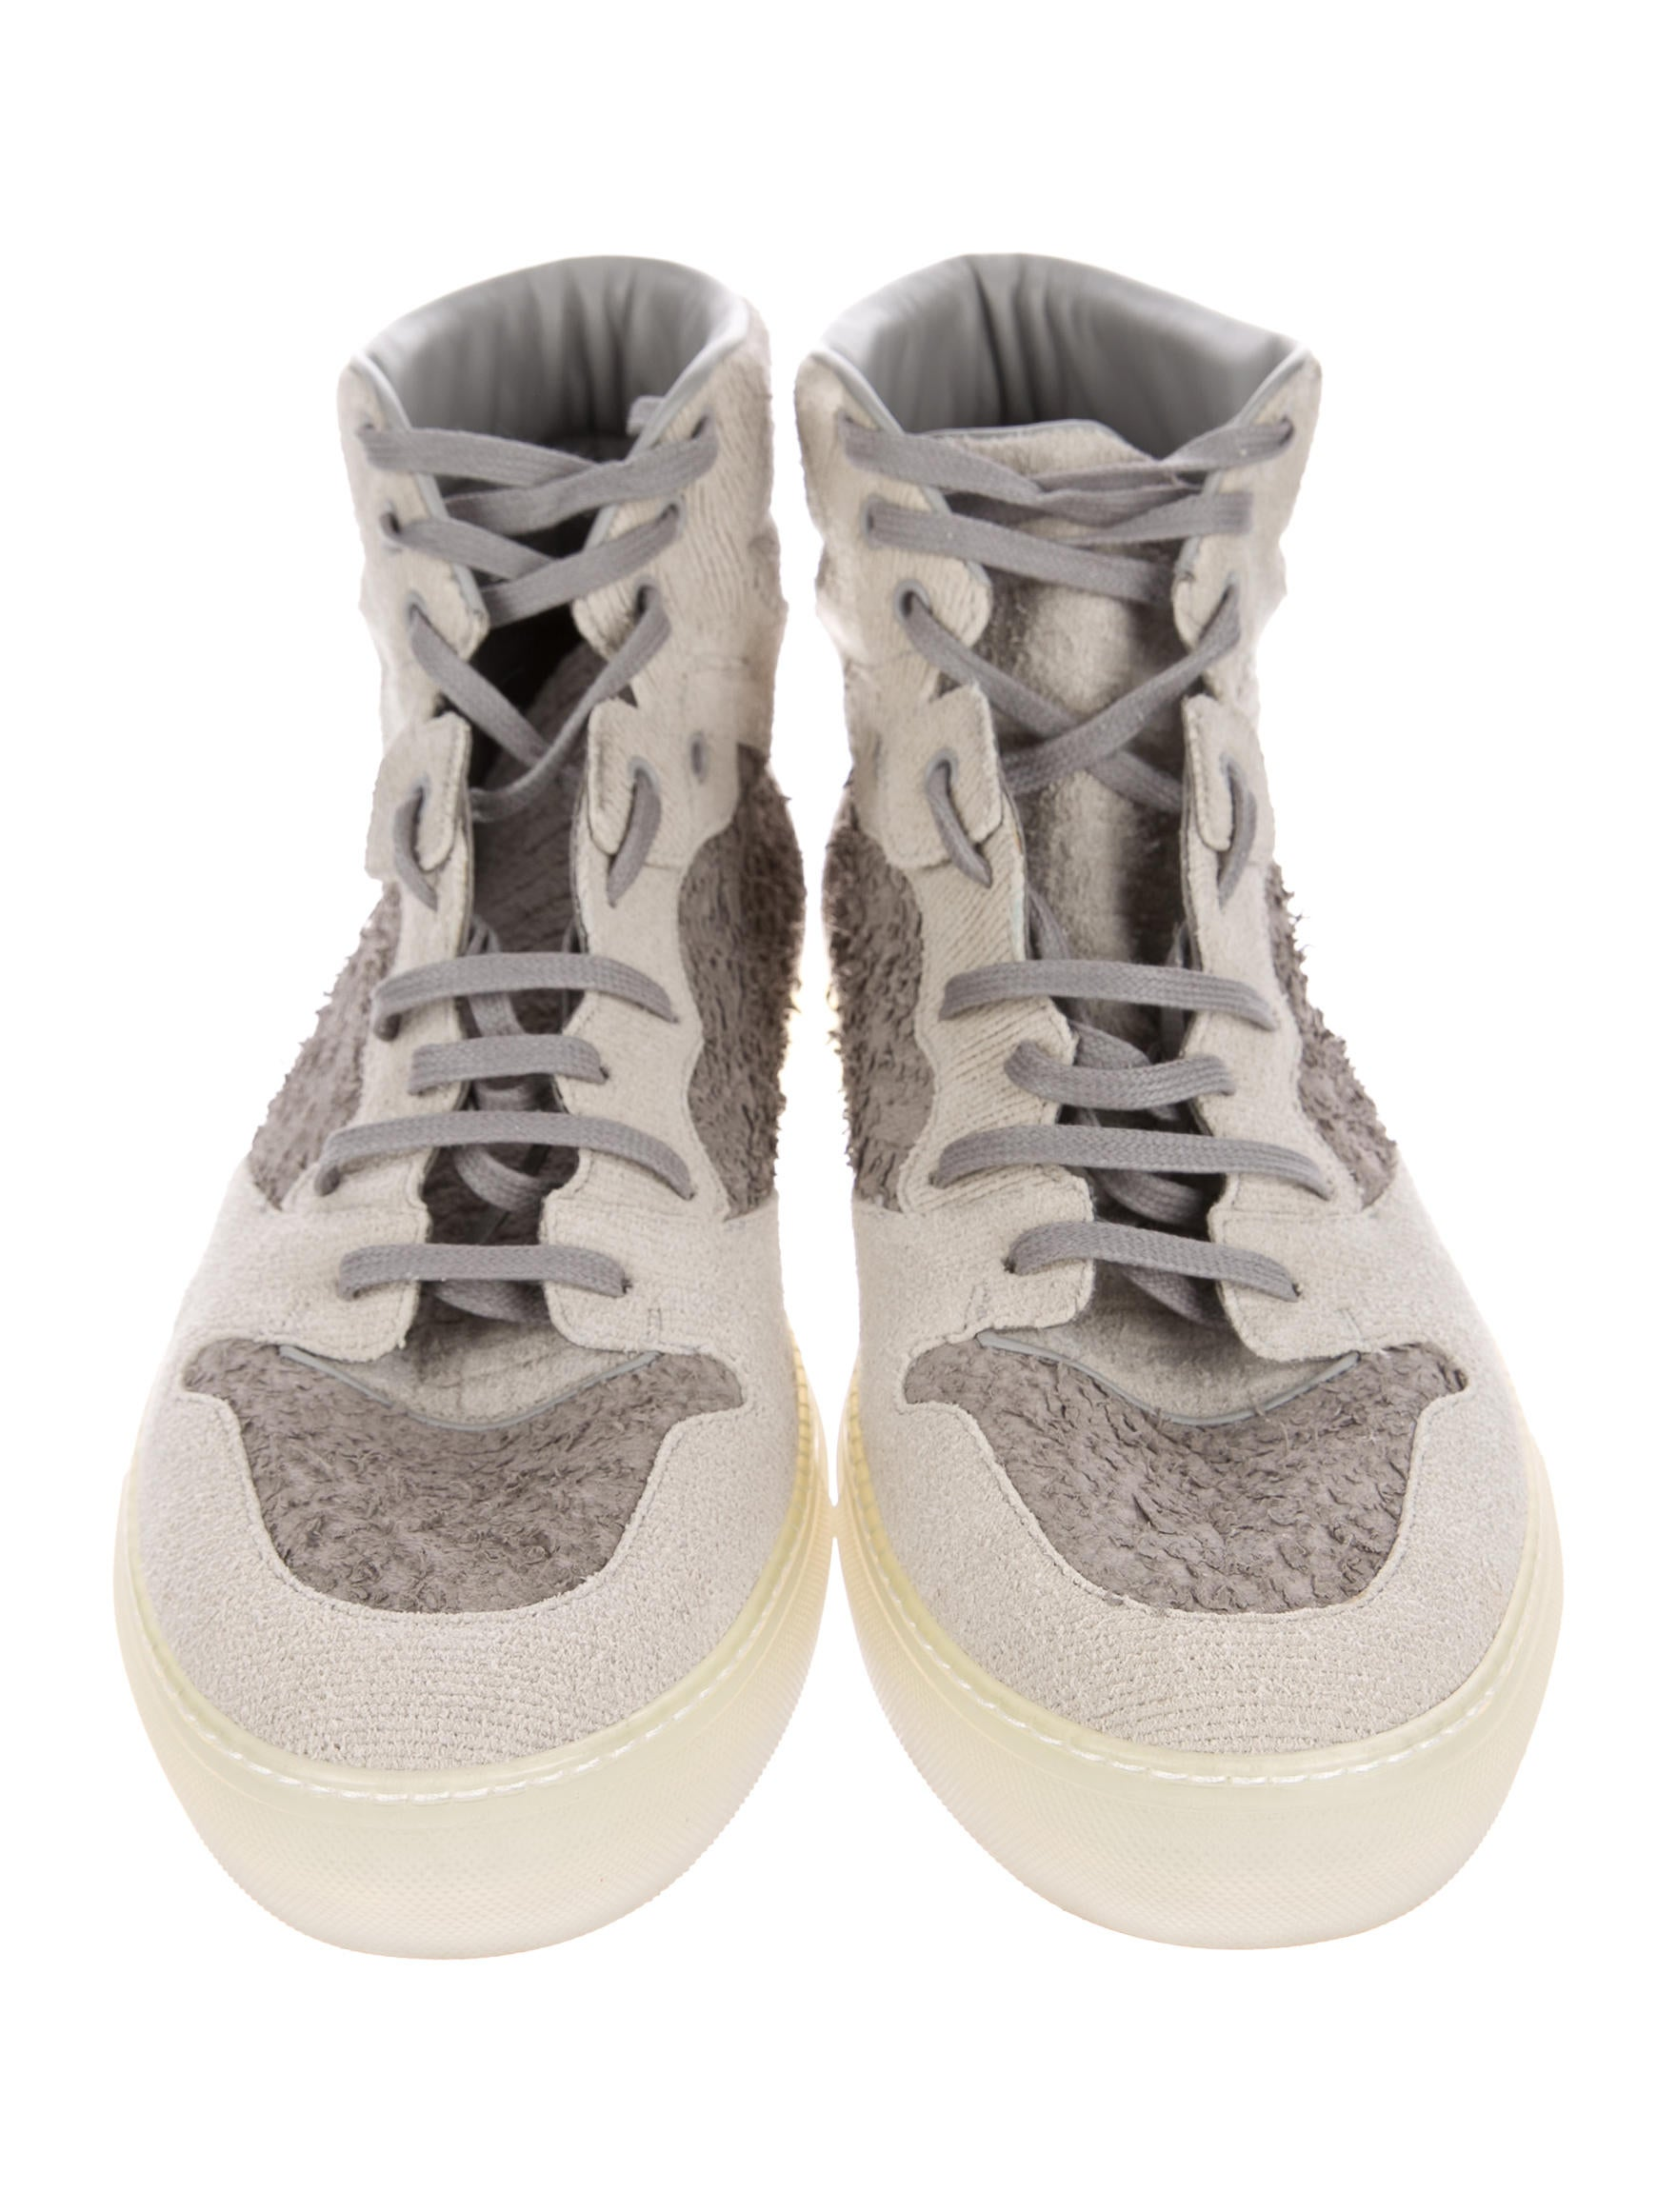 Balenciaga Suede High-Top Sneakers - Shoes - BAL54590 | The RealReal